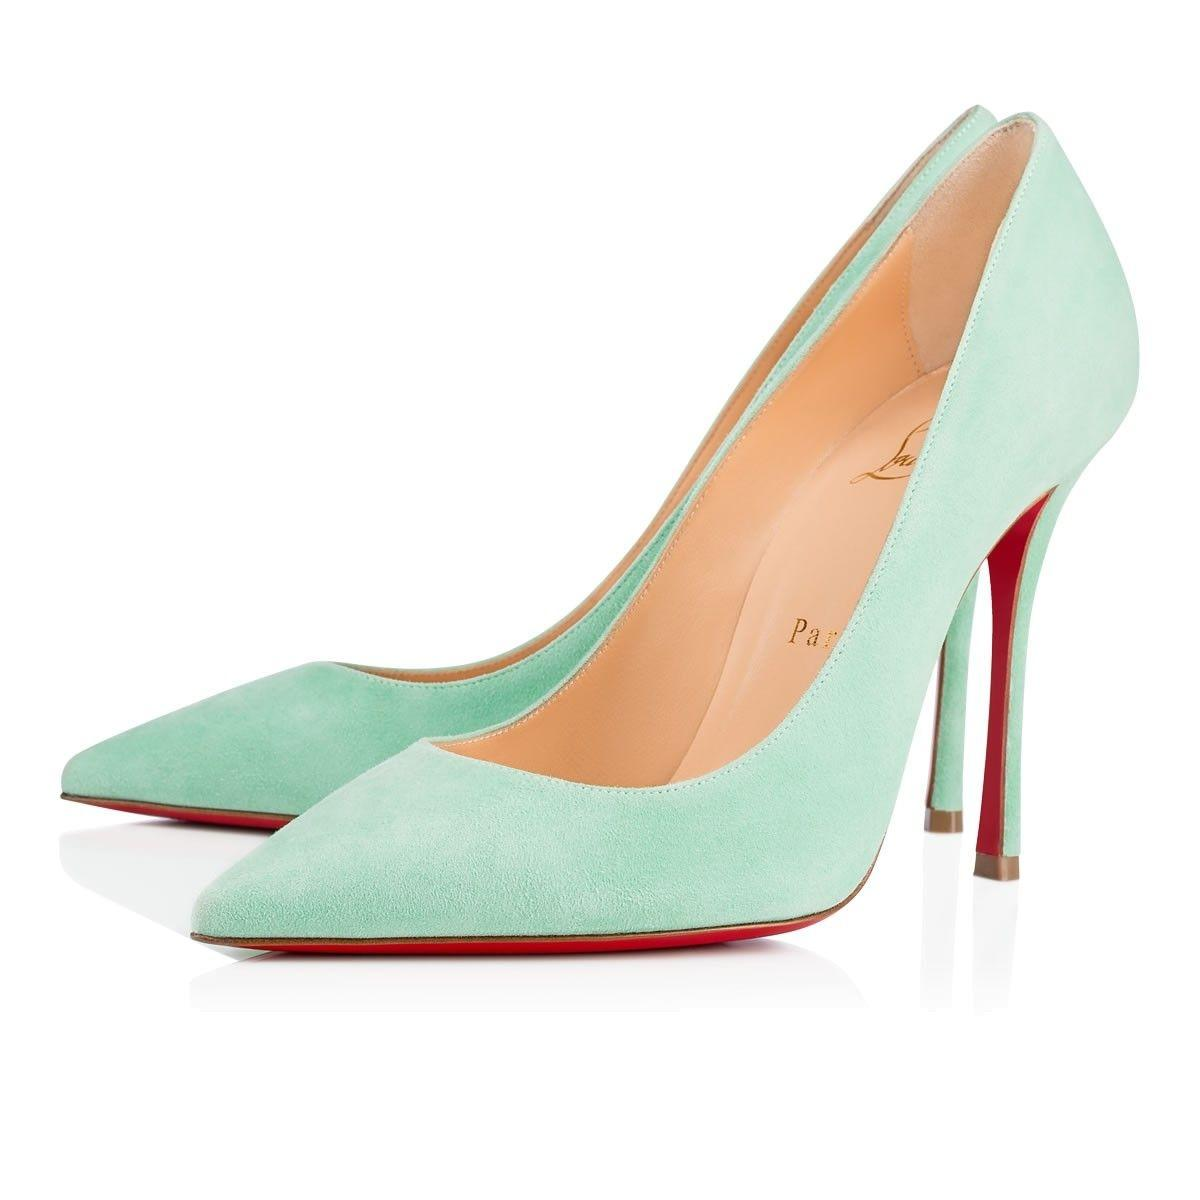 07f914e5df9f Christian Louboutin Blue Classic Decoltish 100mm Opal Mint Mint Mint Suede  Leather Point-toe Heels Pumps Size EU 38 (Approx. US 8) Regular (M